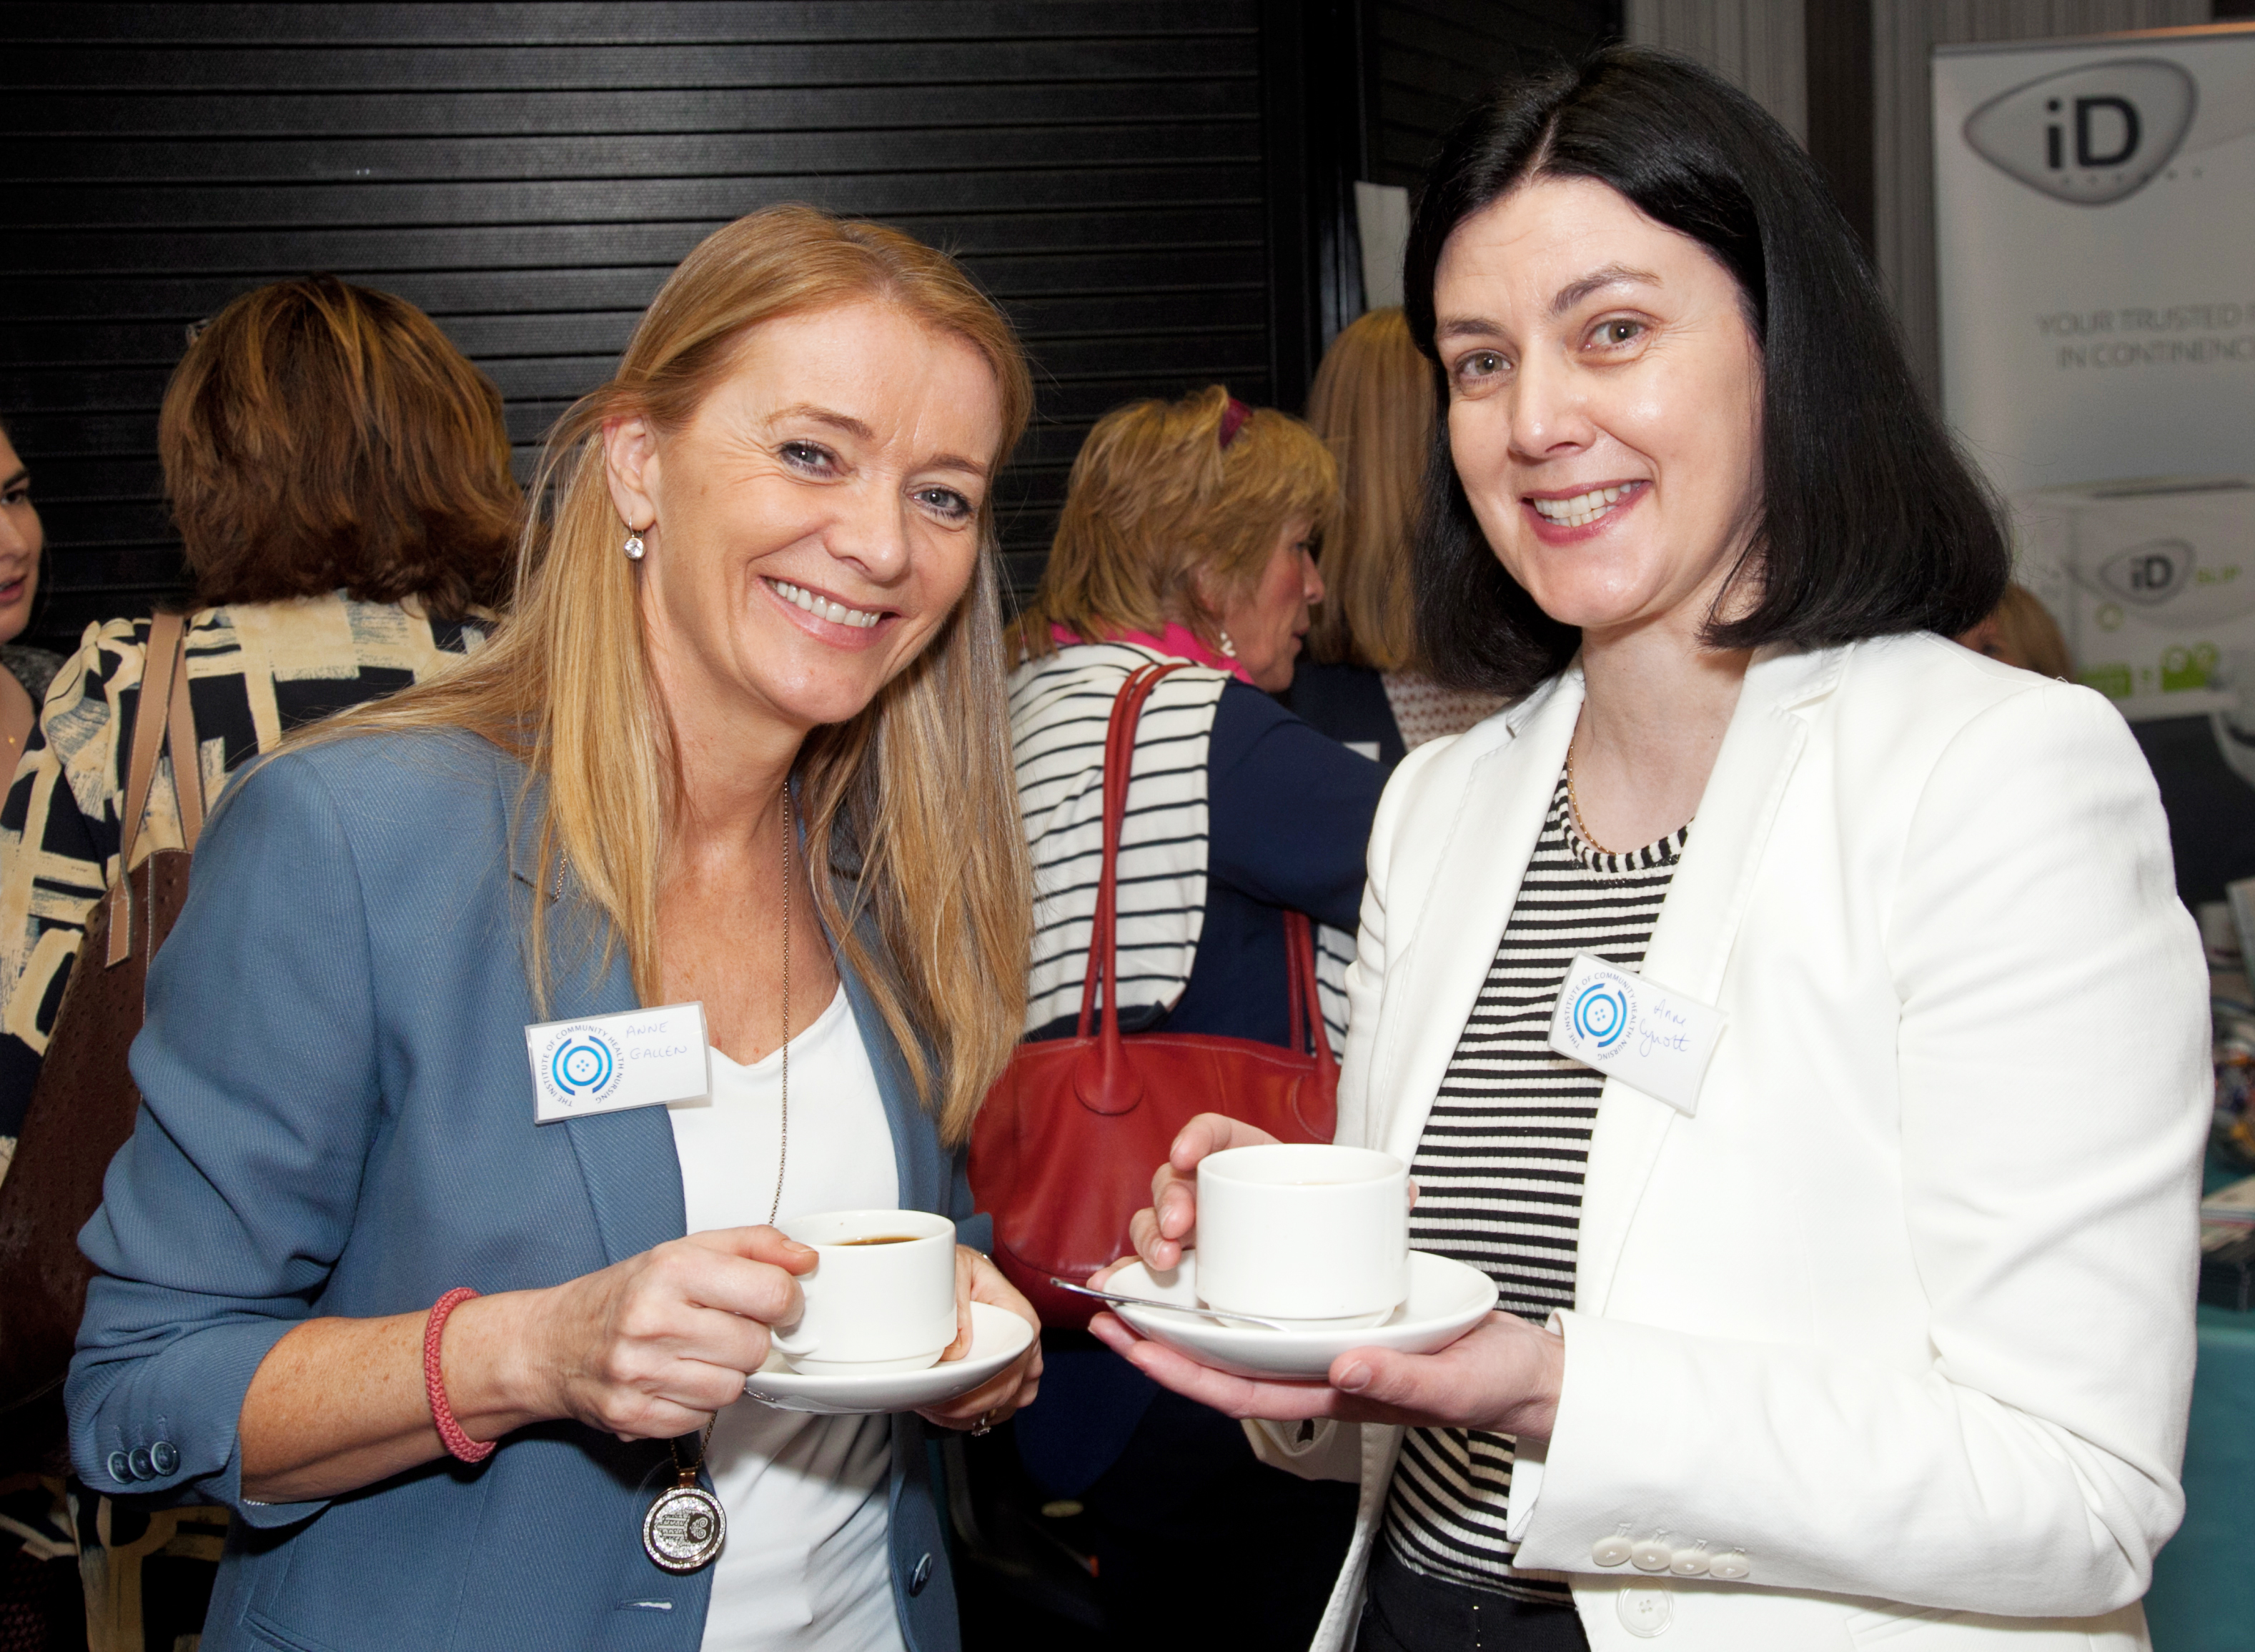 Copyright ©2016 Paul Sherwood Photography www.sherwood.ieInstitute of community Health Nursing - ICHN - Conference 2016, held in the Ashling Hotel, Dublin. May 2016